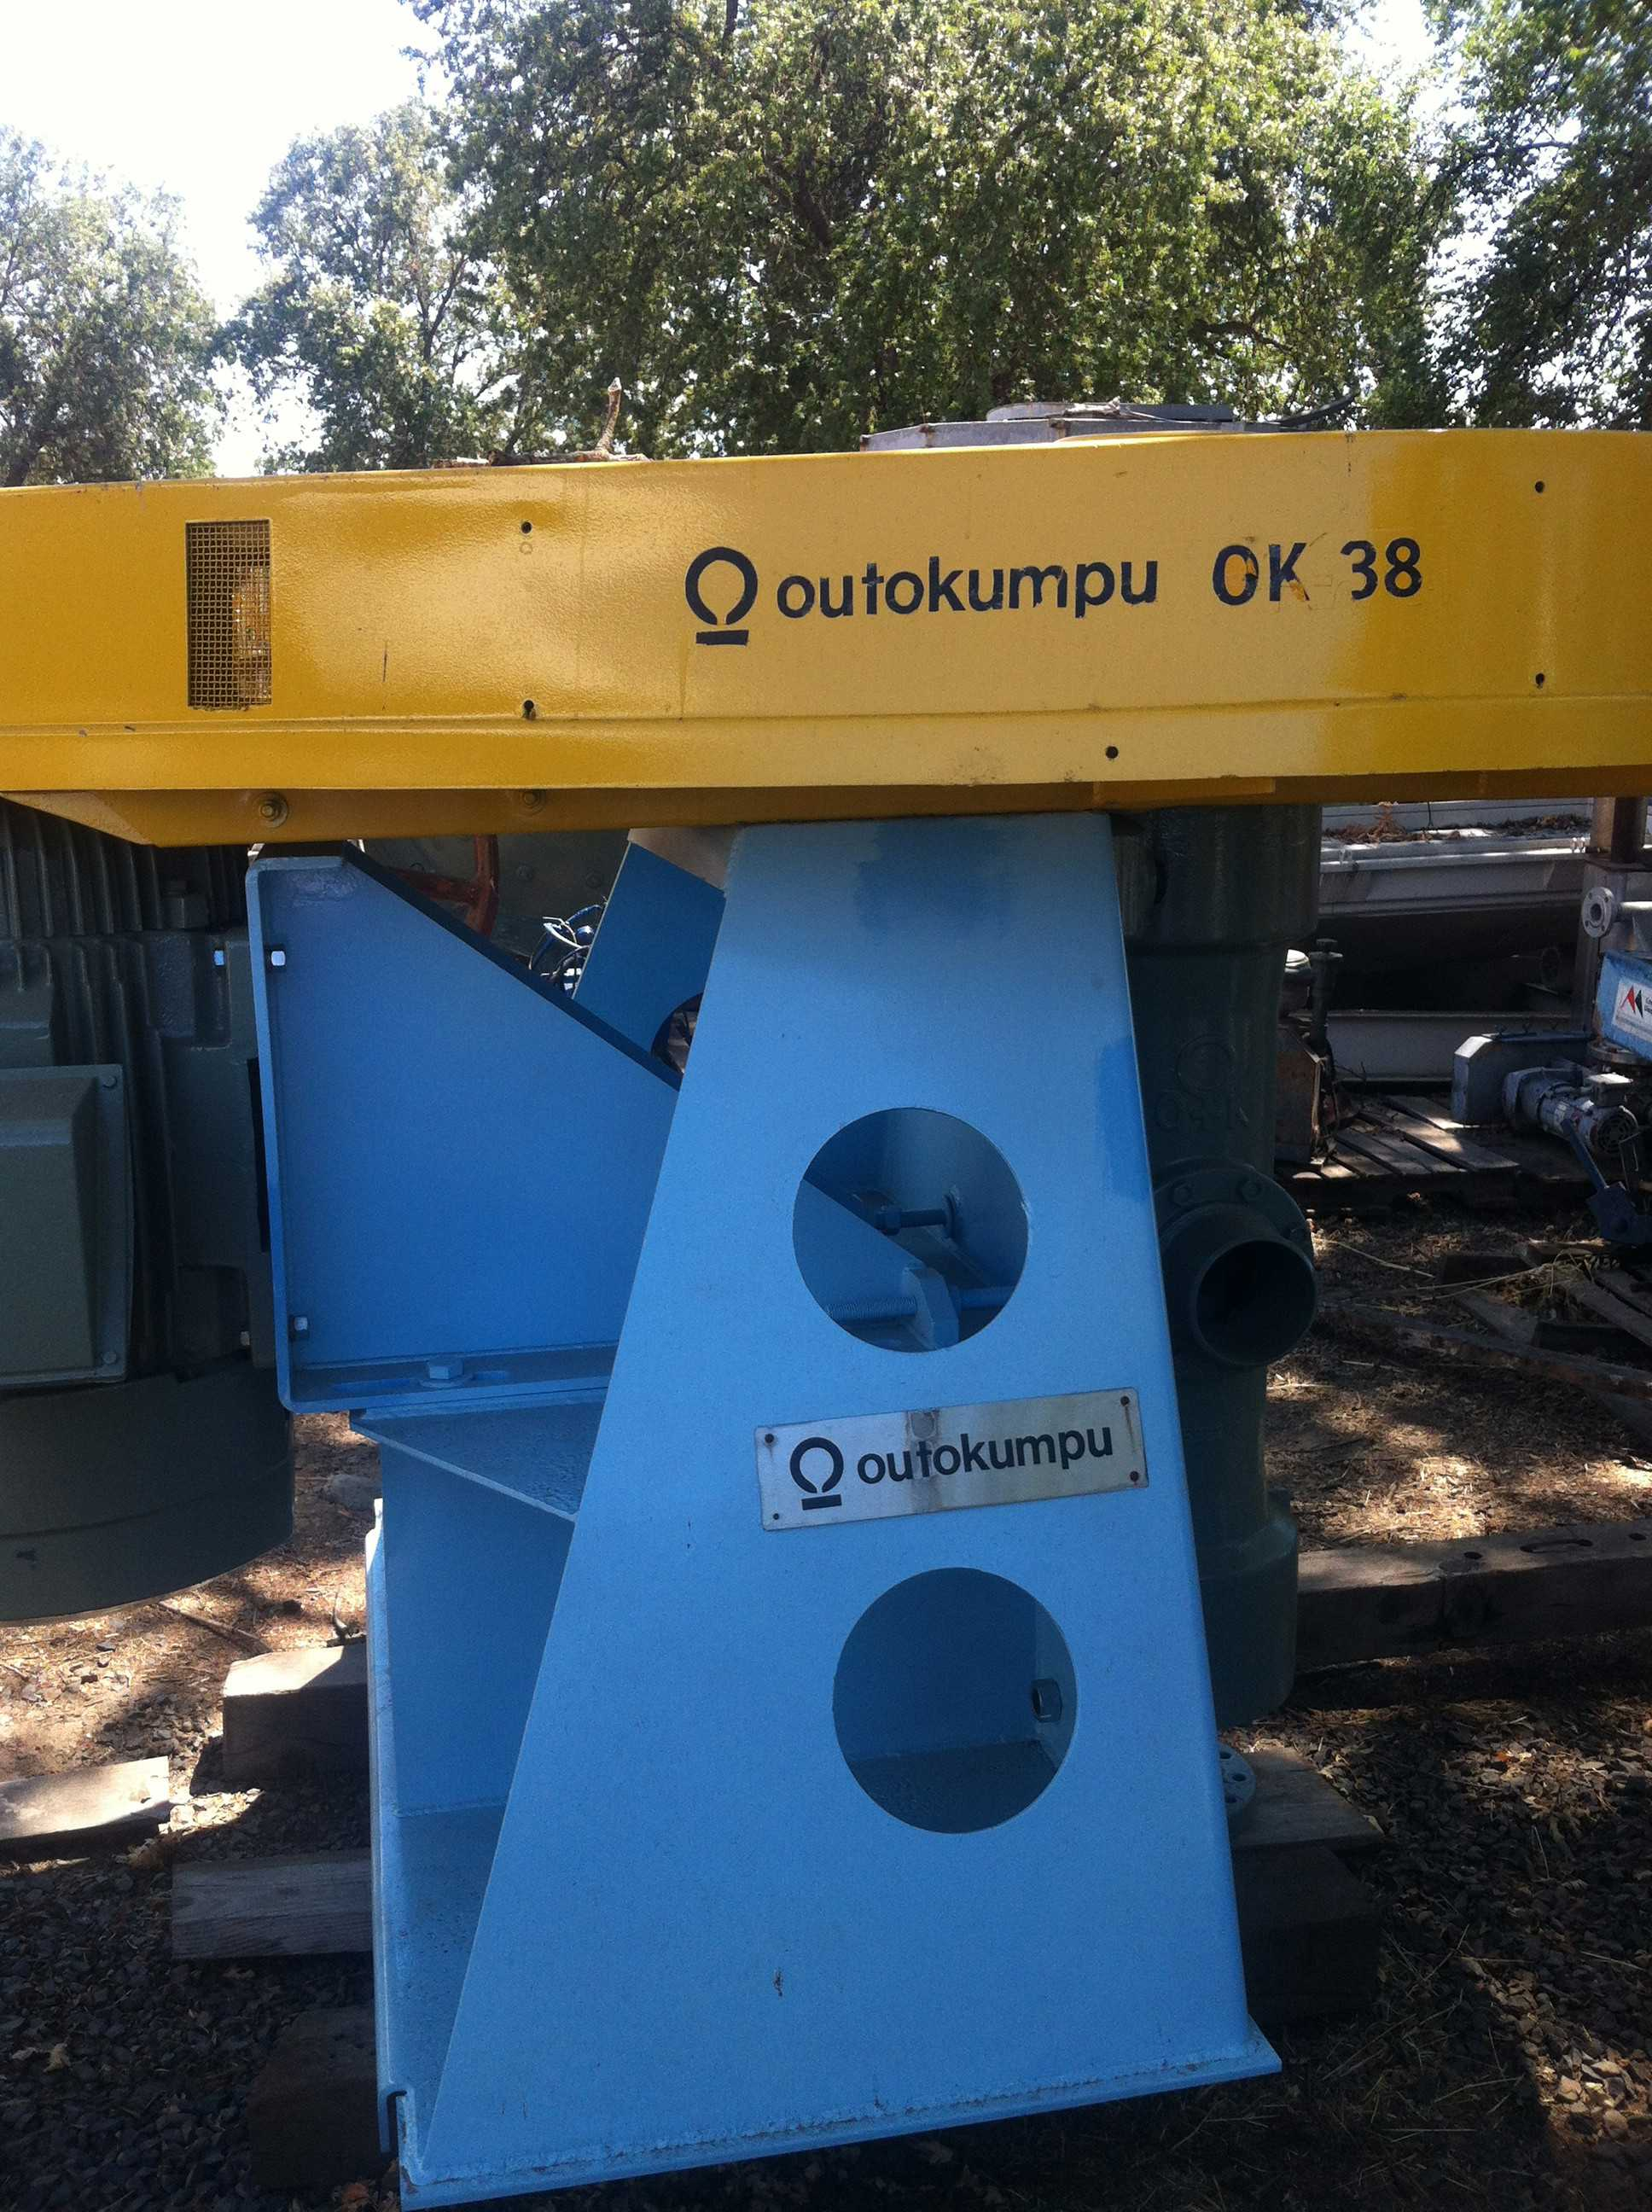 12 Units  - OUTOKUMPU Type OK-38 2-U Flotation Cell Mechanisms with 60 kw (80 HP) motors